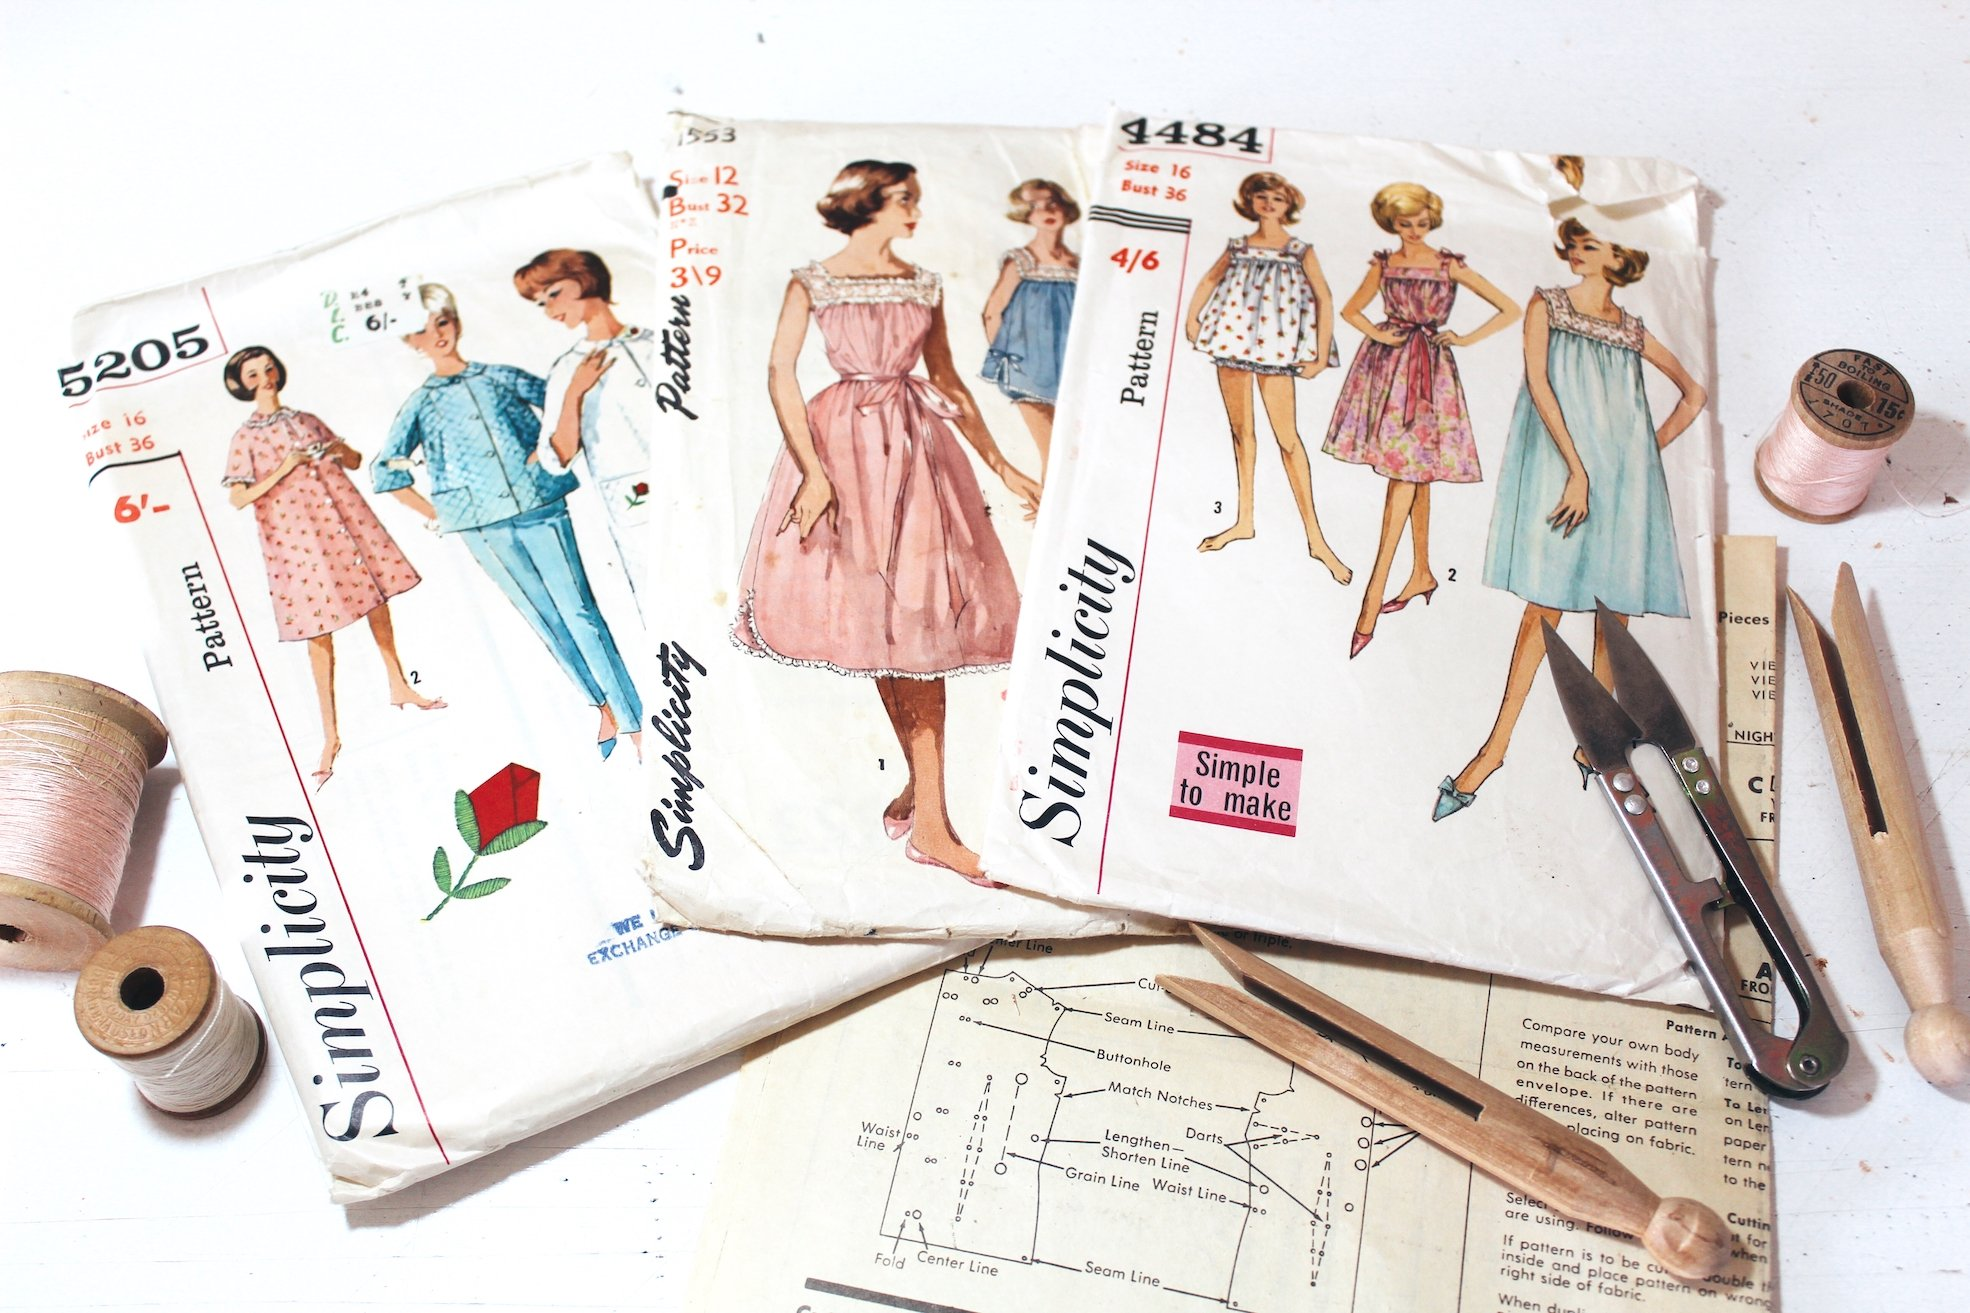 5 sewing tips for beginners sewing patterns laying on table with spools and snips